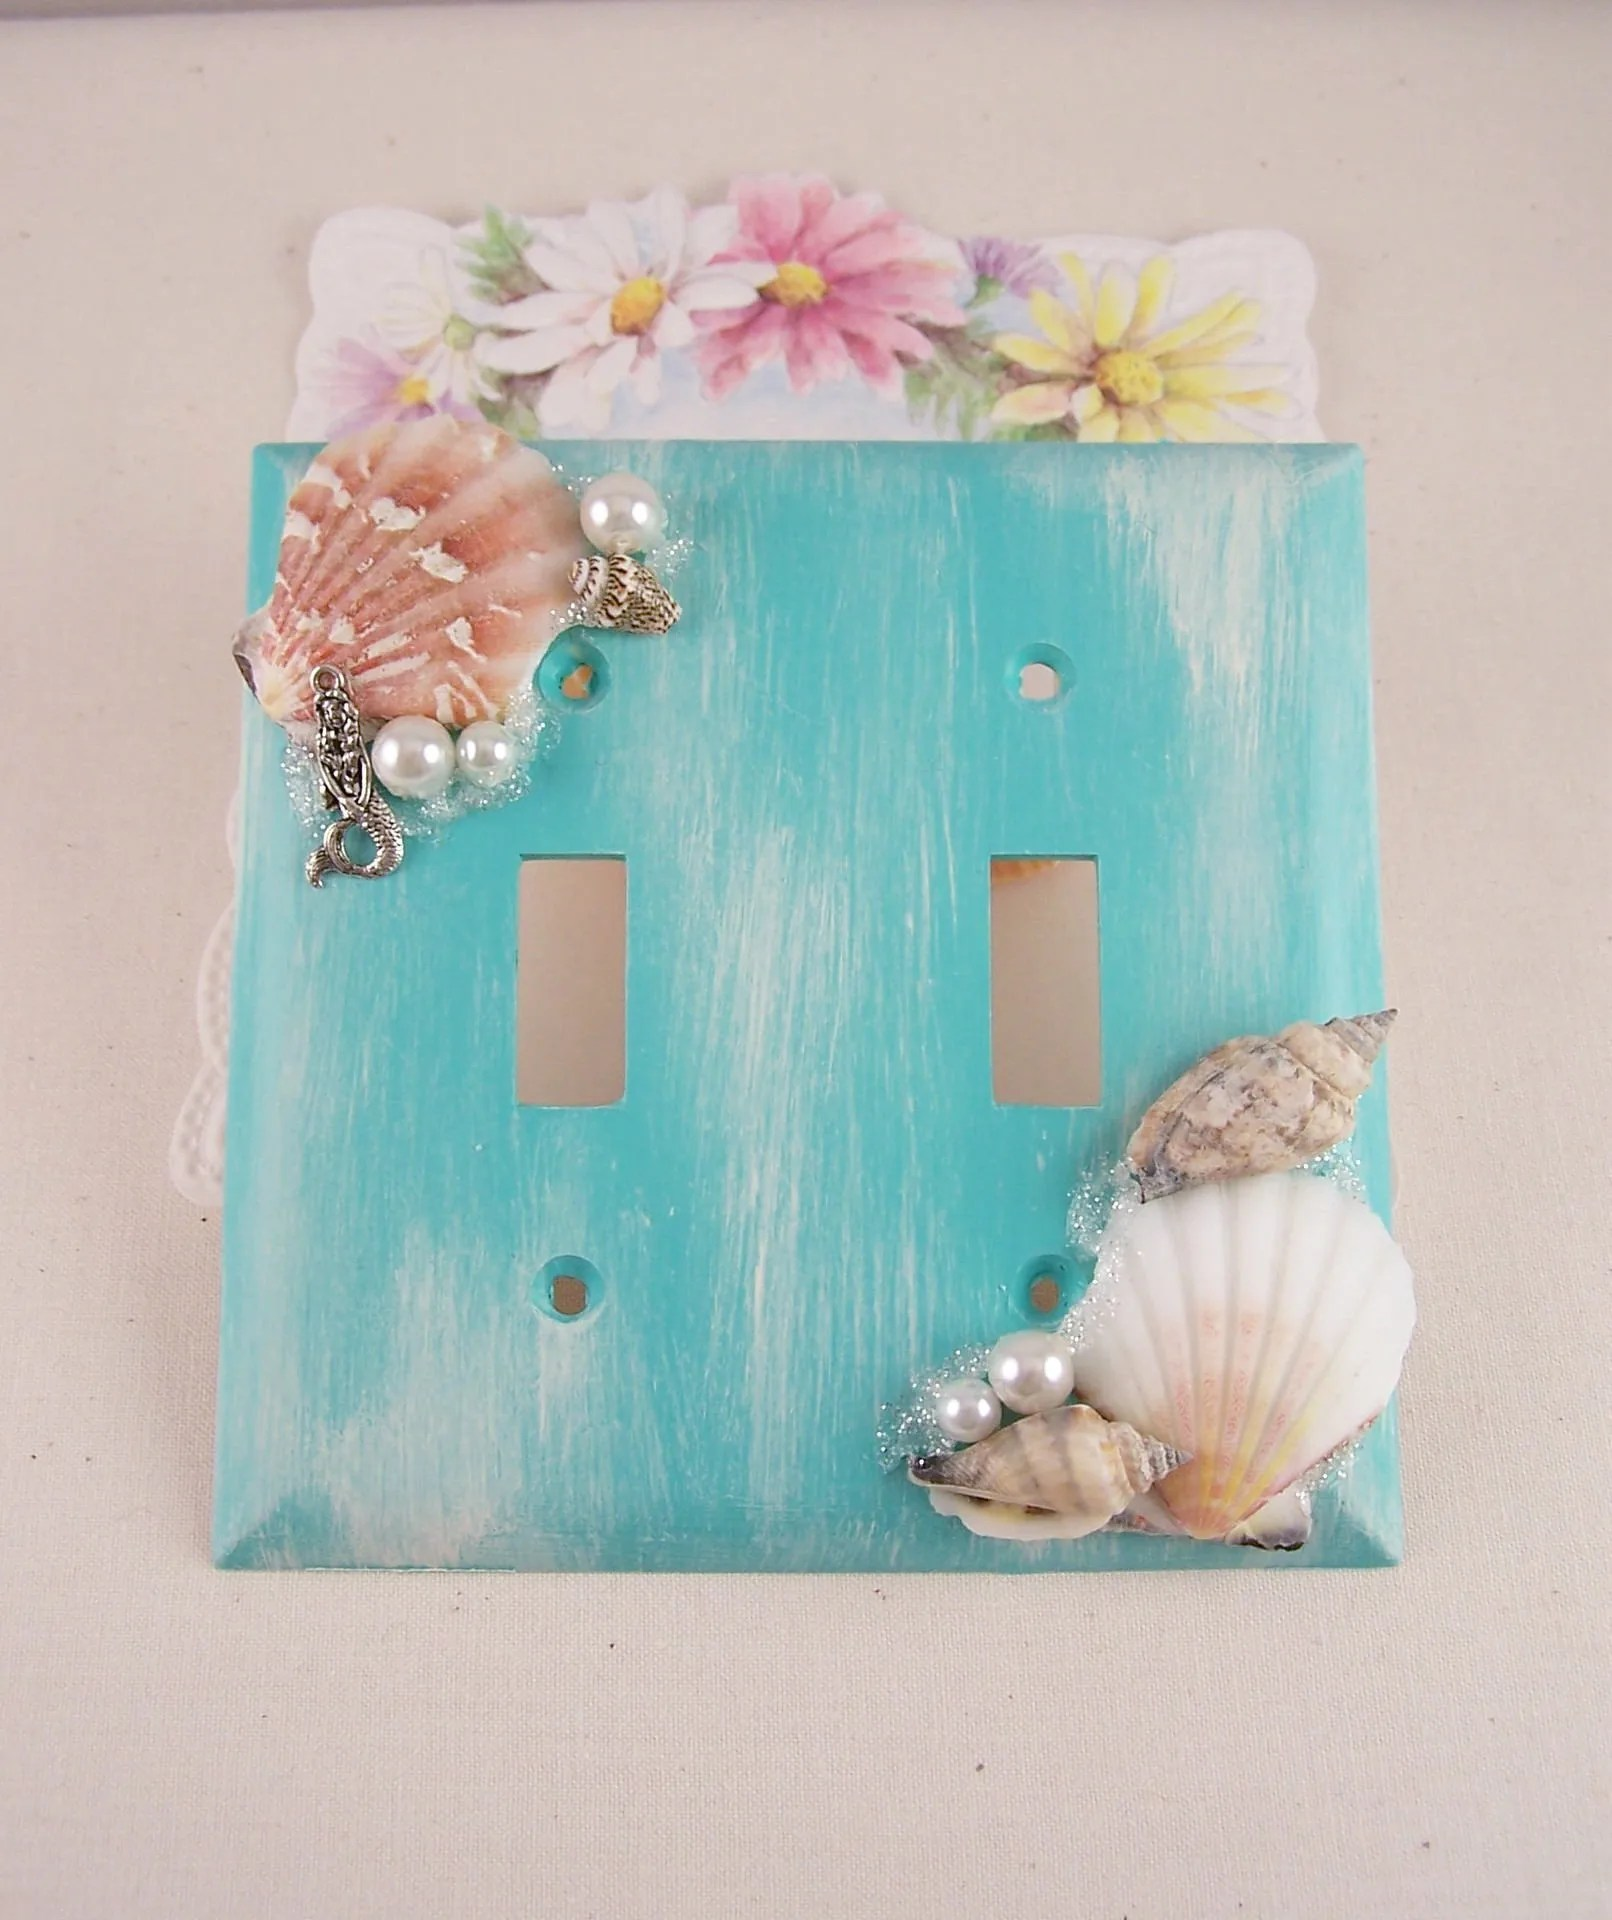 Mermaid Switch Plate Seashell Mermaid Switchplate Cover